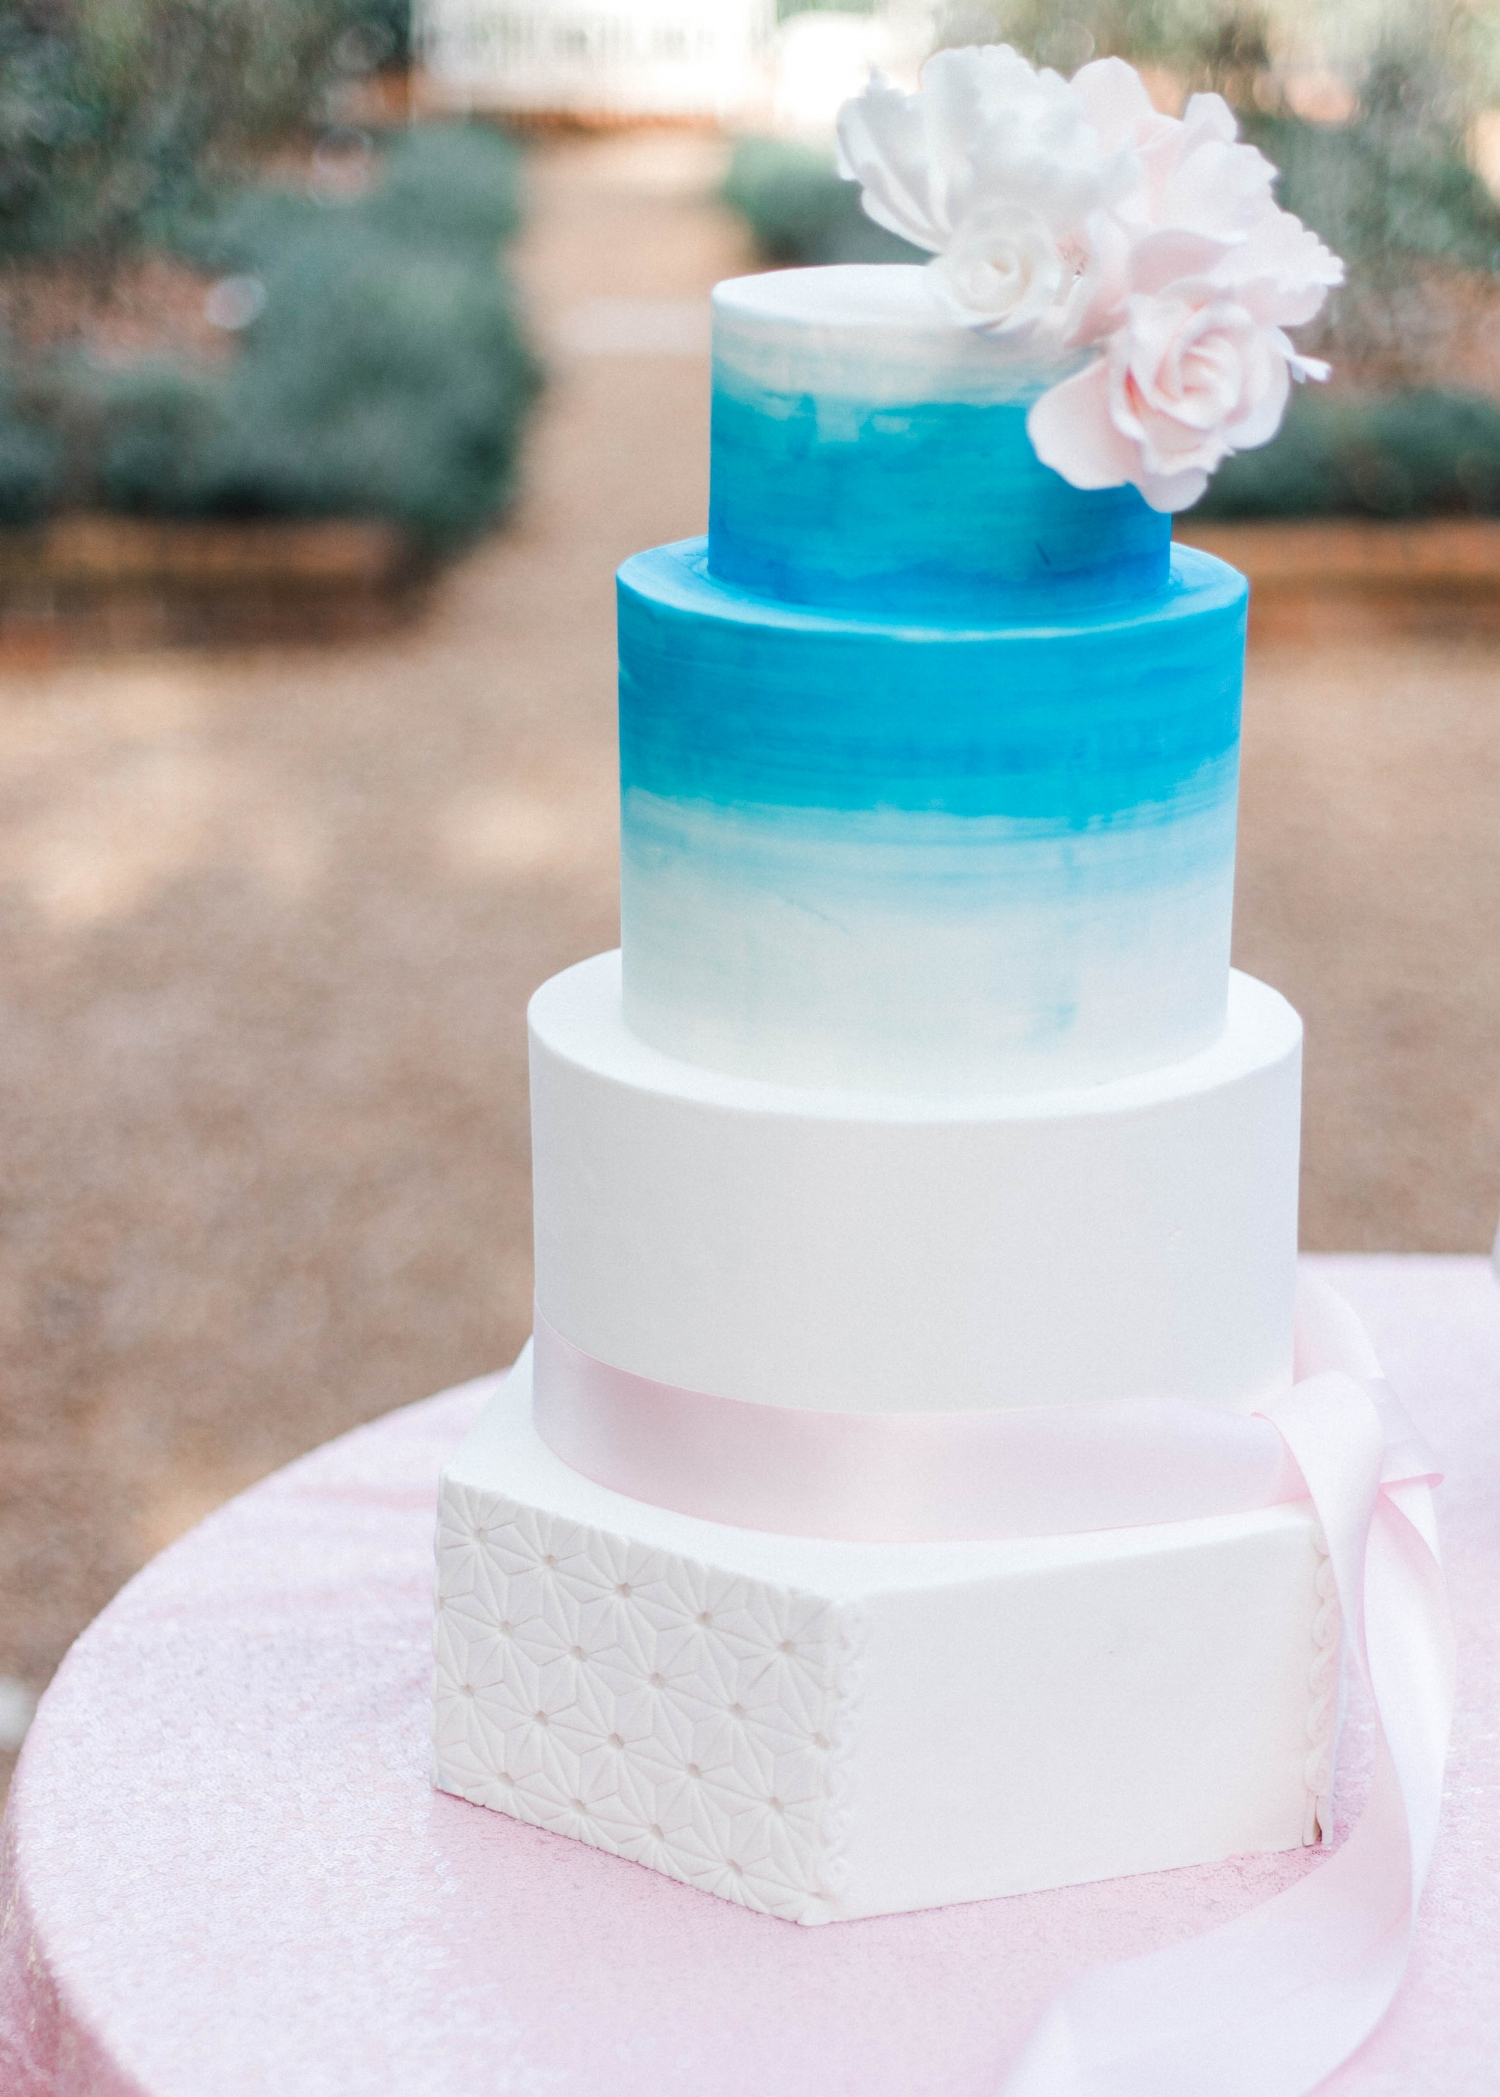 Turquoise and pink wedding cake.